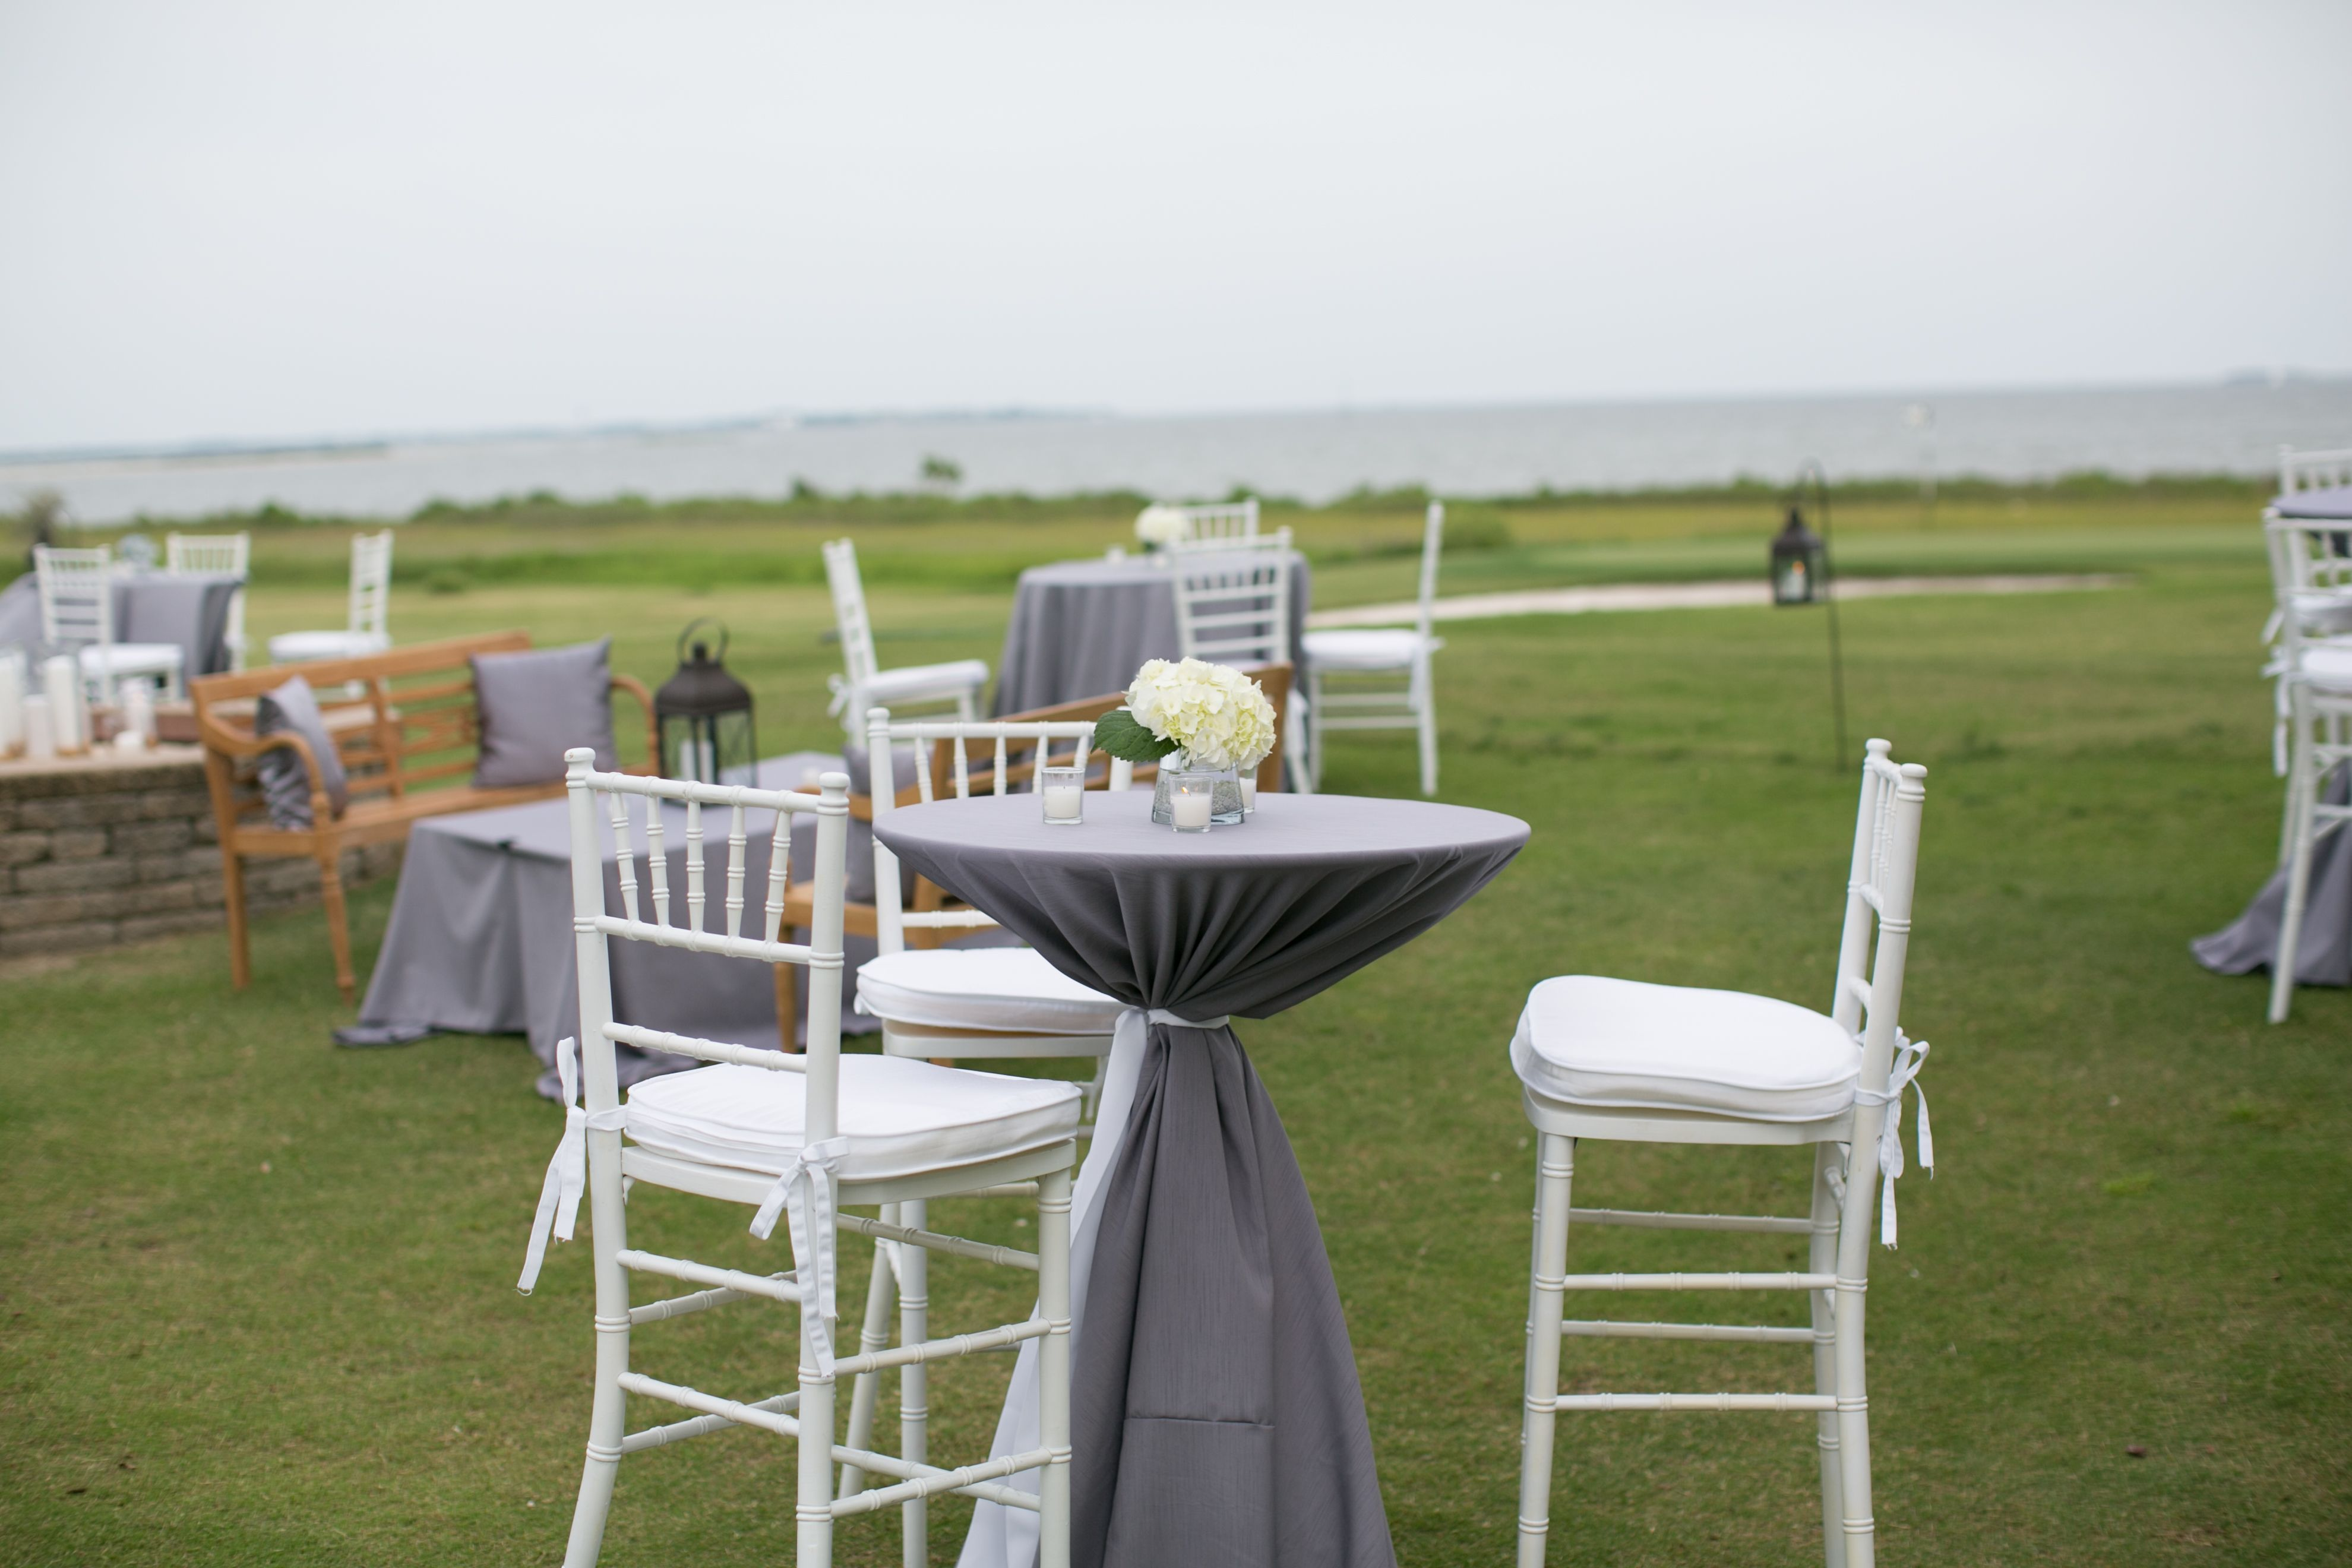 Wedding Planners Charleston Sc Event Planning Consultants Weddings By Color Outdoor Furniture Sets Event Planning